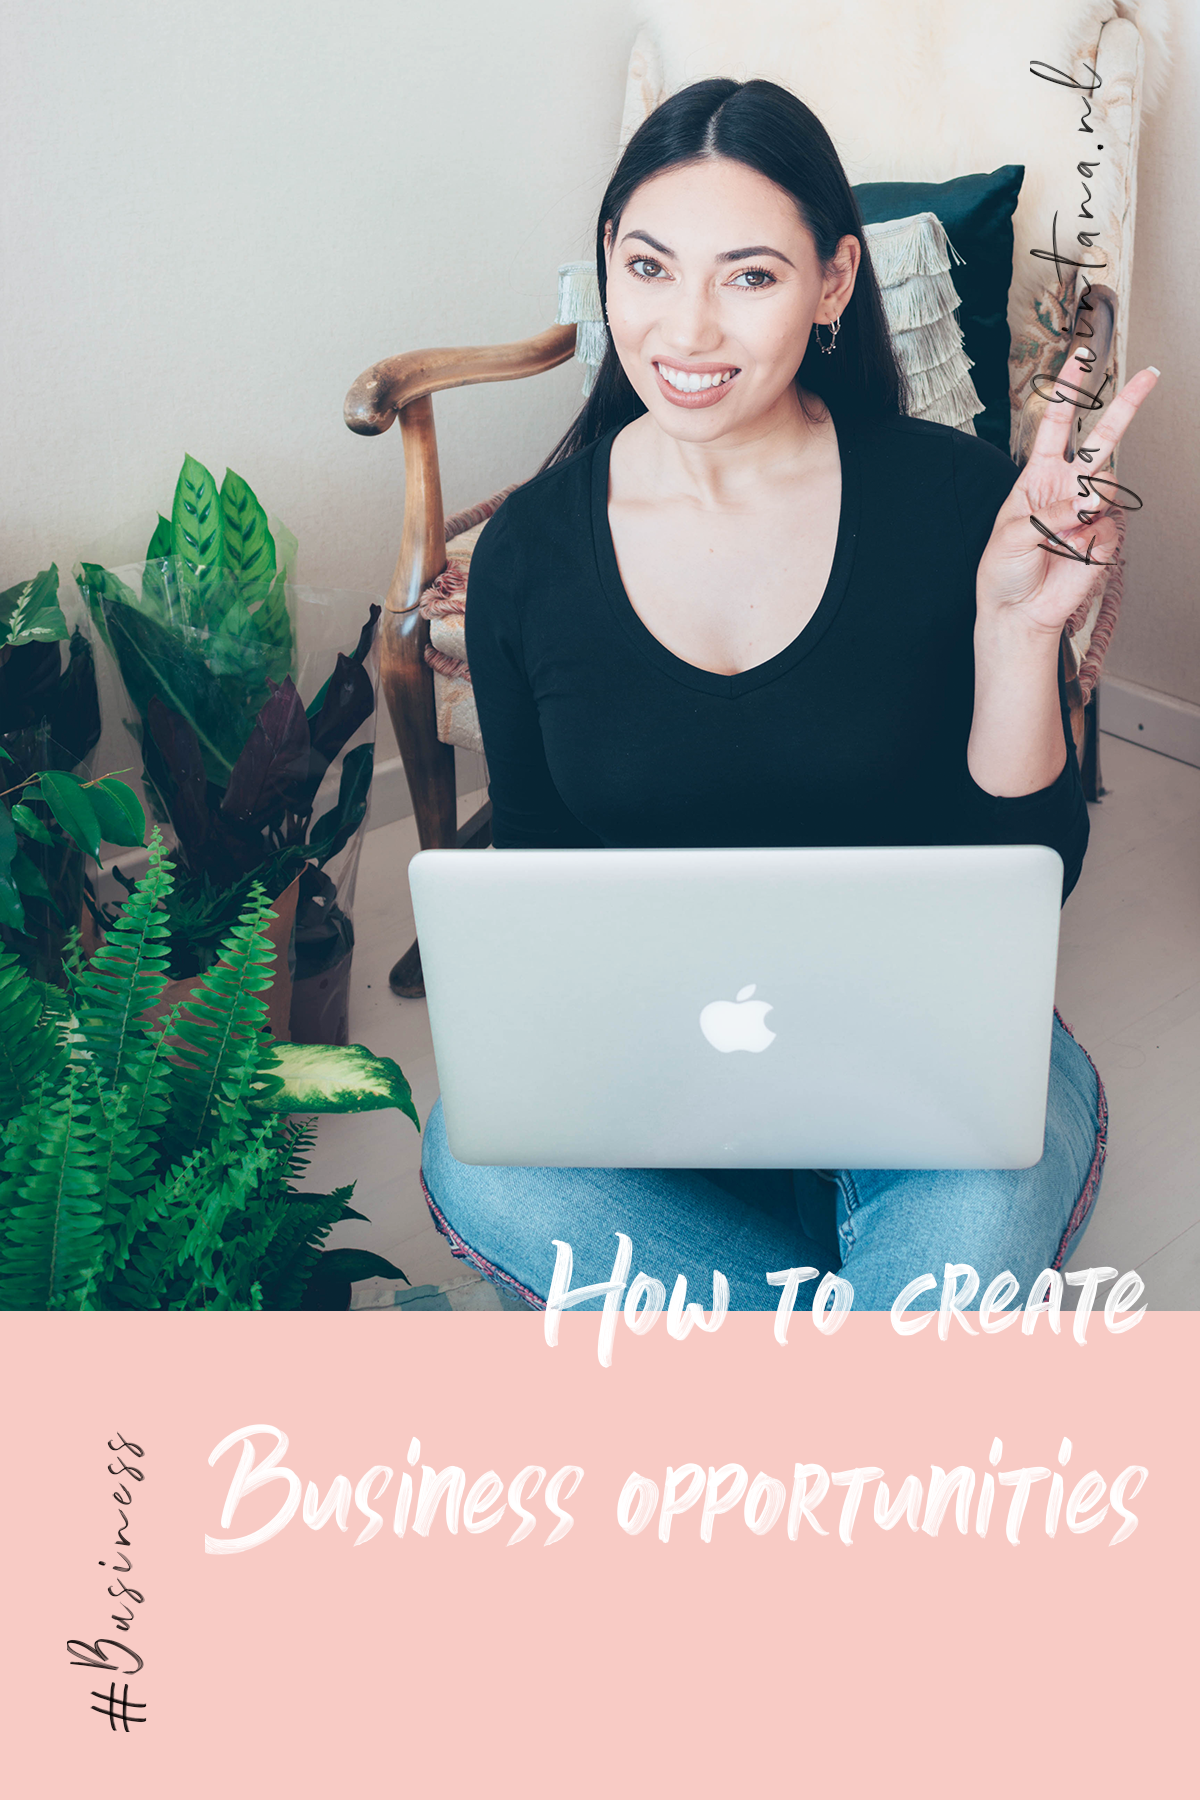 How to create business opportunities